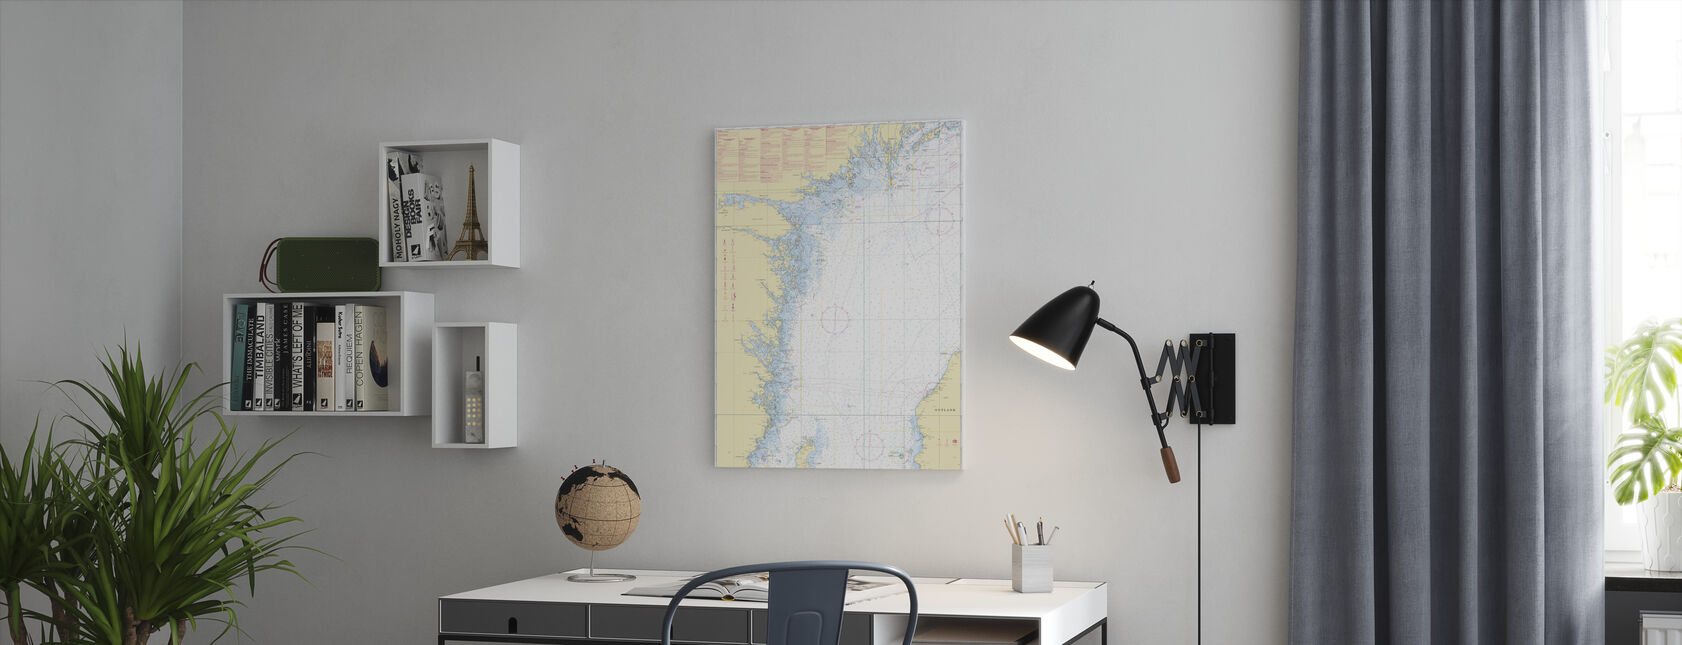 Sea Chart 72 - Oland - Landsort - Canvas print - Office